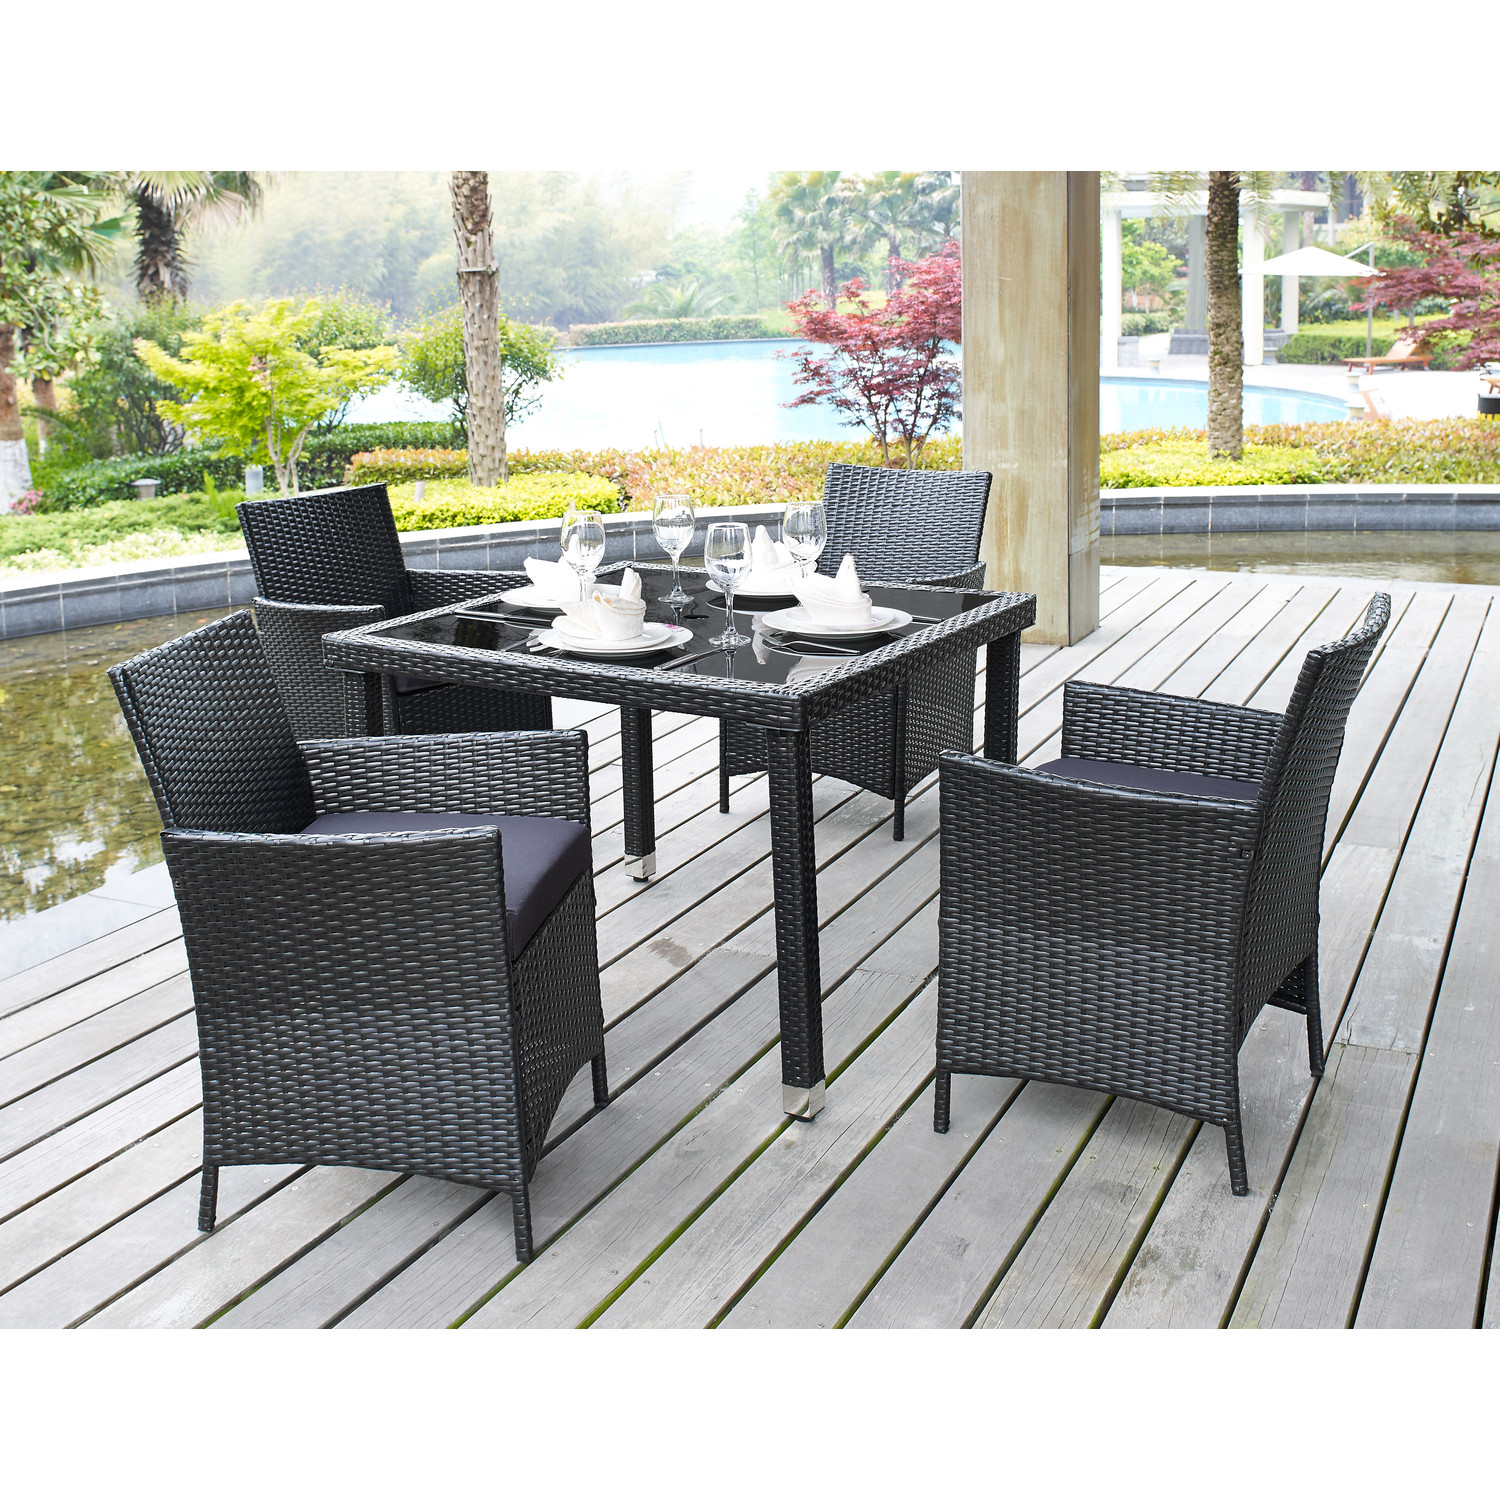 Places to go for affordable modern outdoor furniture for Outdoor garden furniture